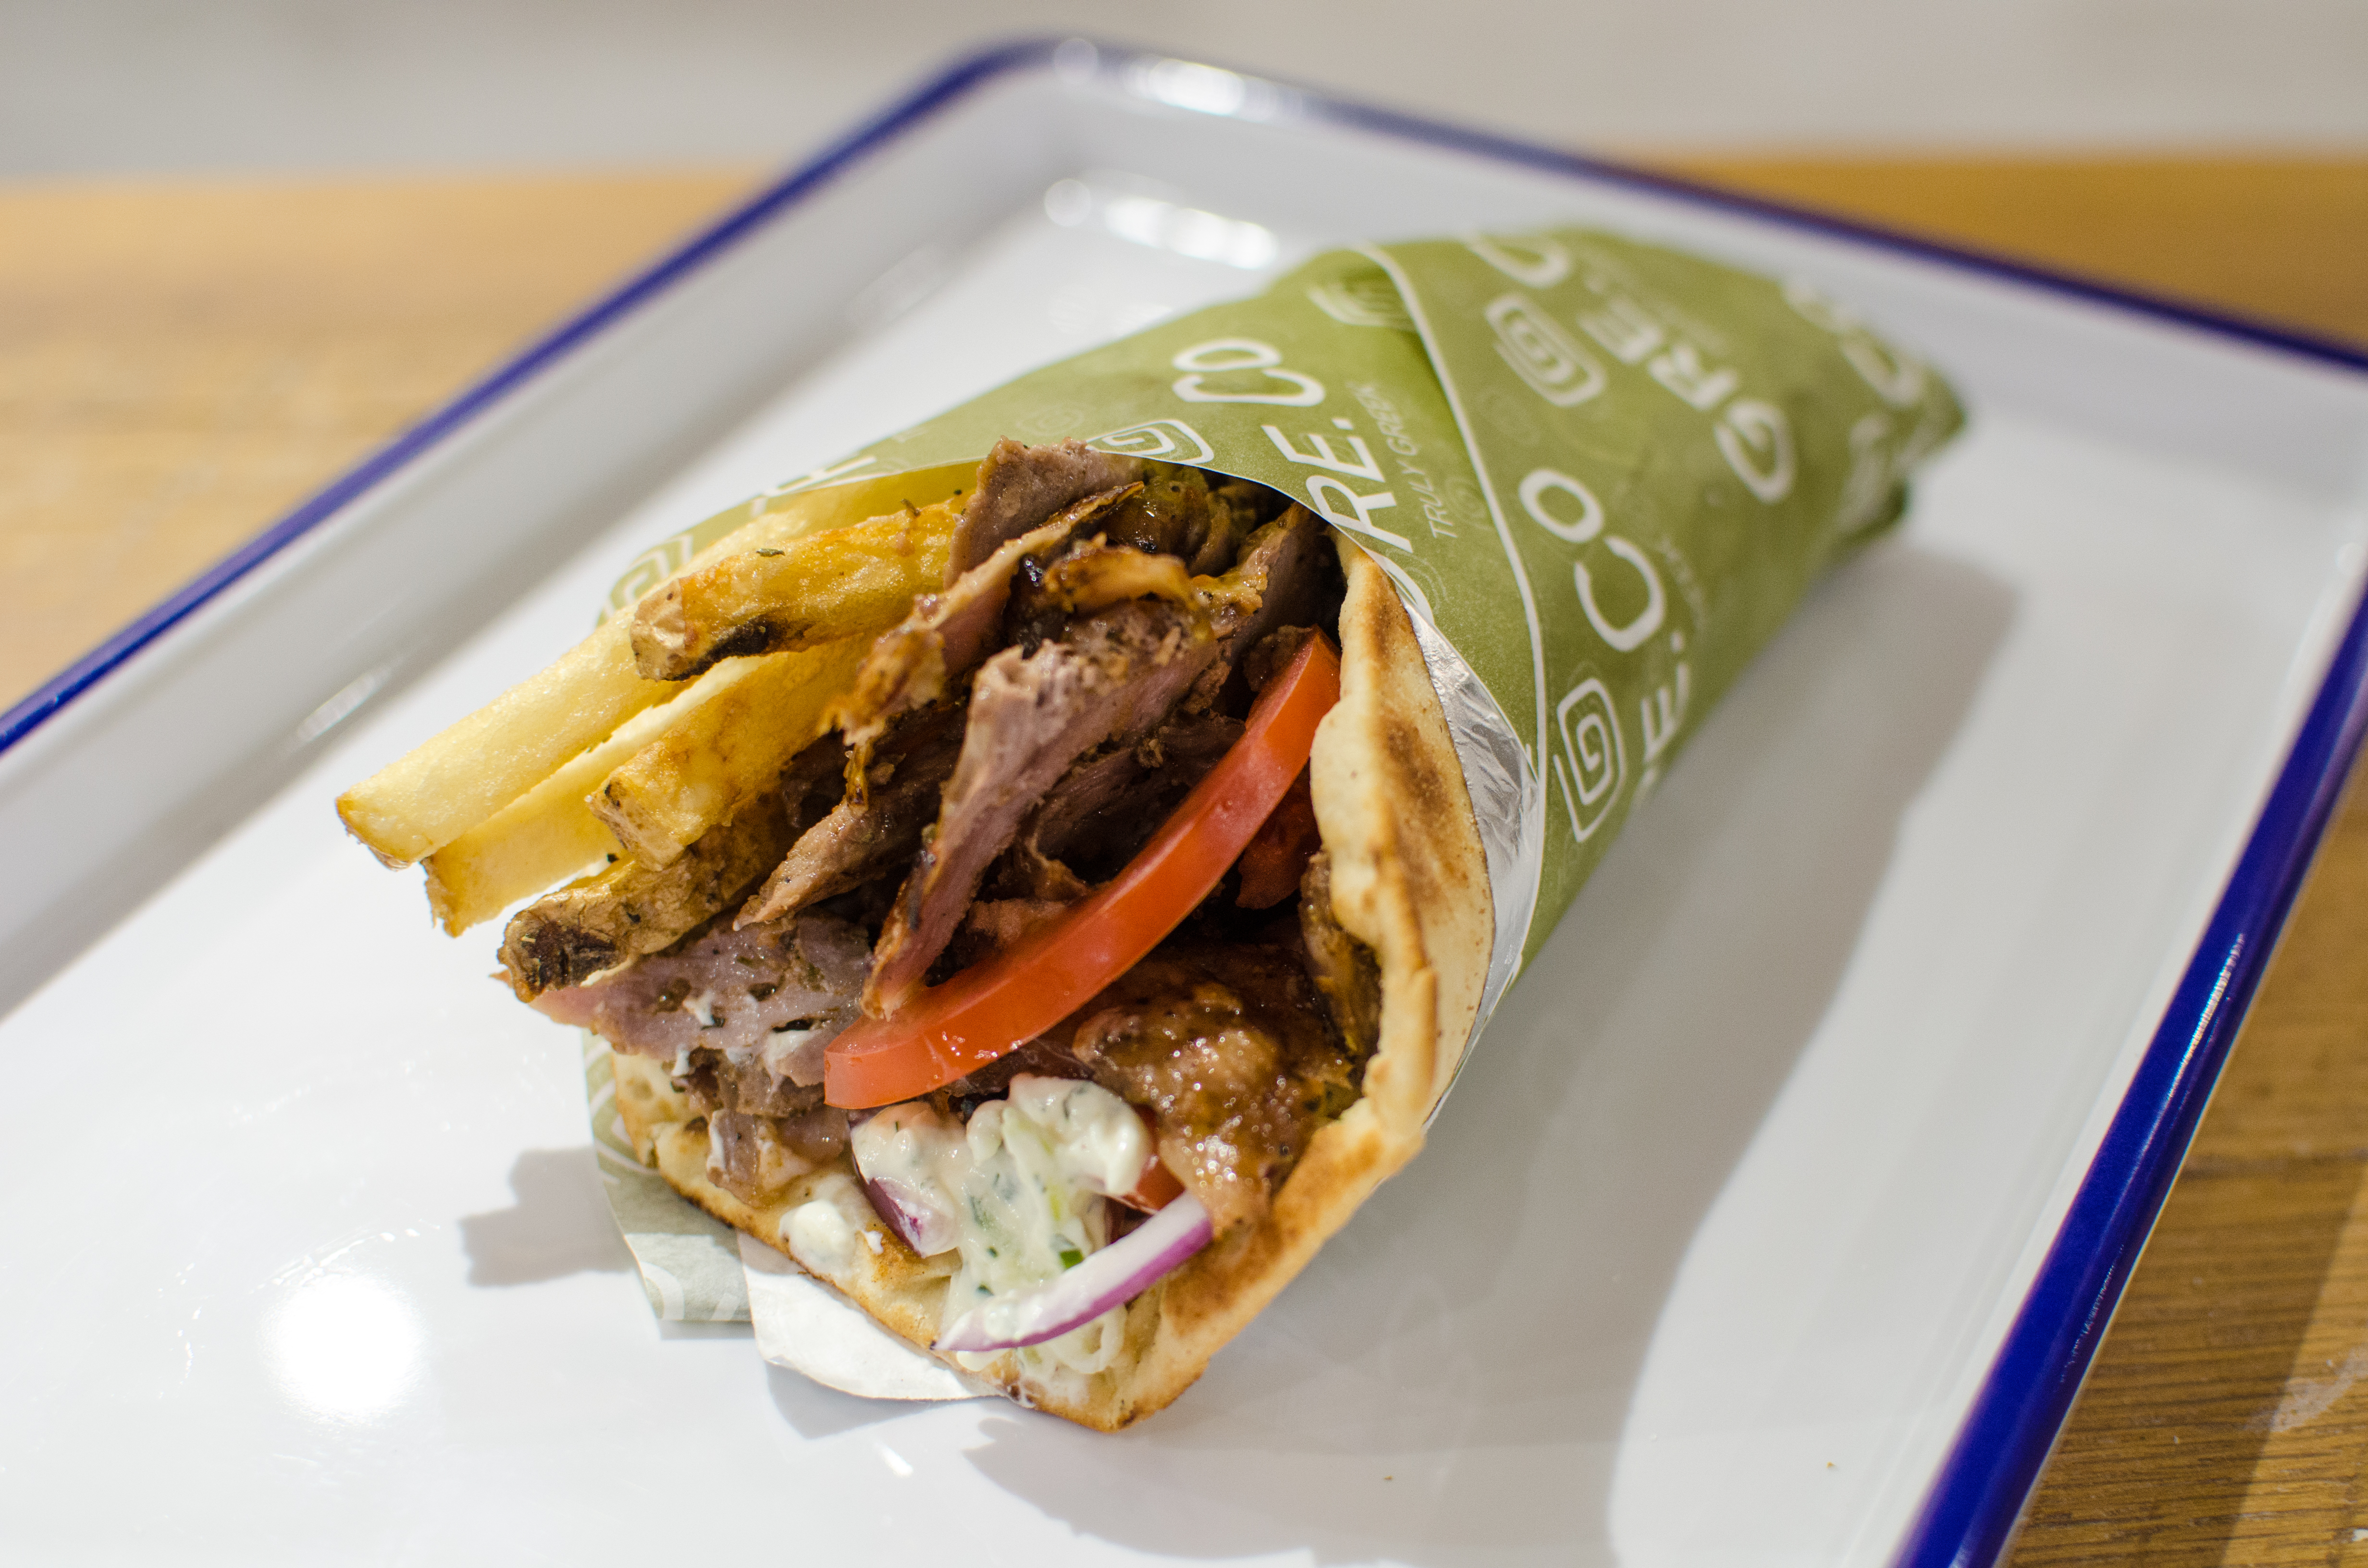 A gyro from fast-casual joint GRECO bursts with veggies, meat, and French fries